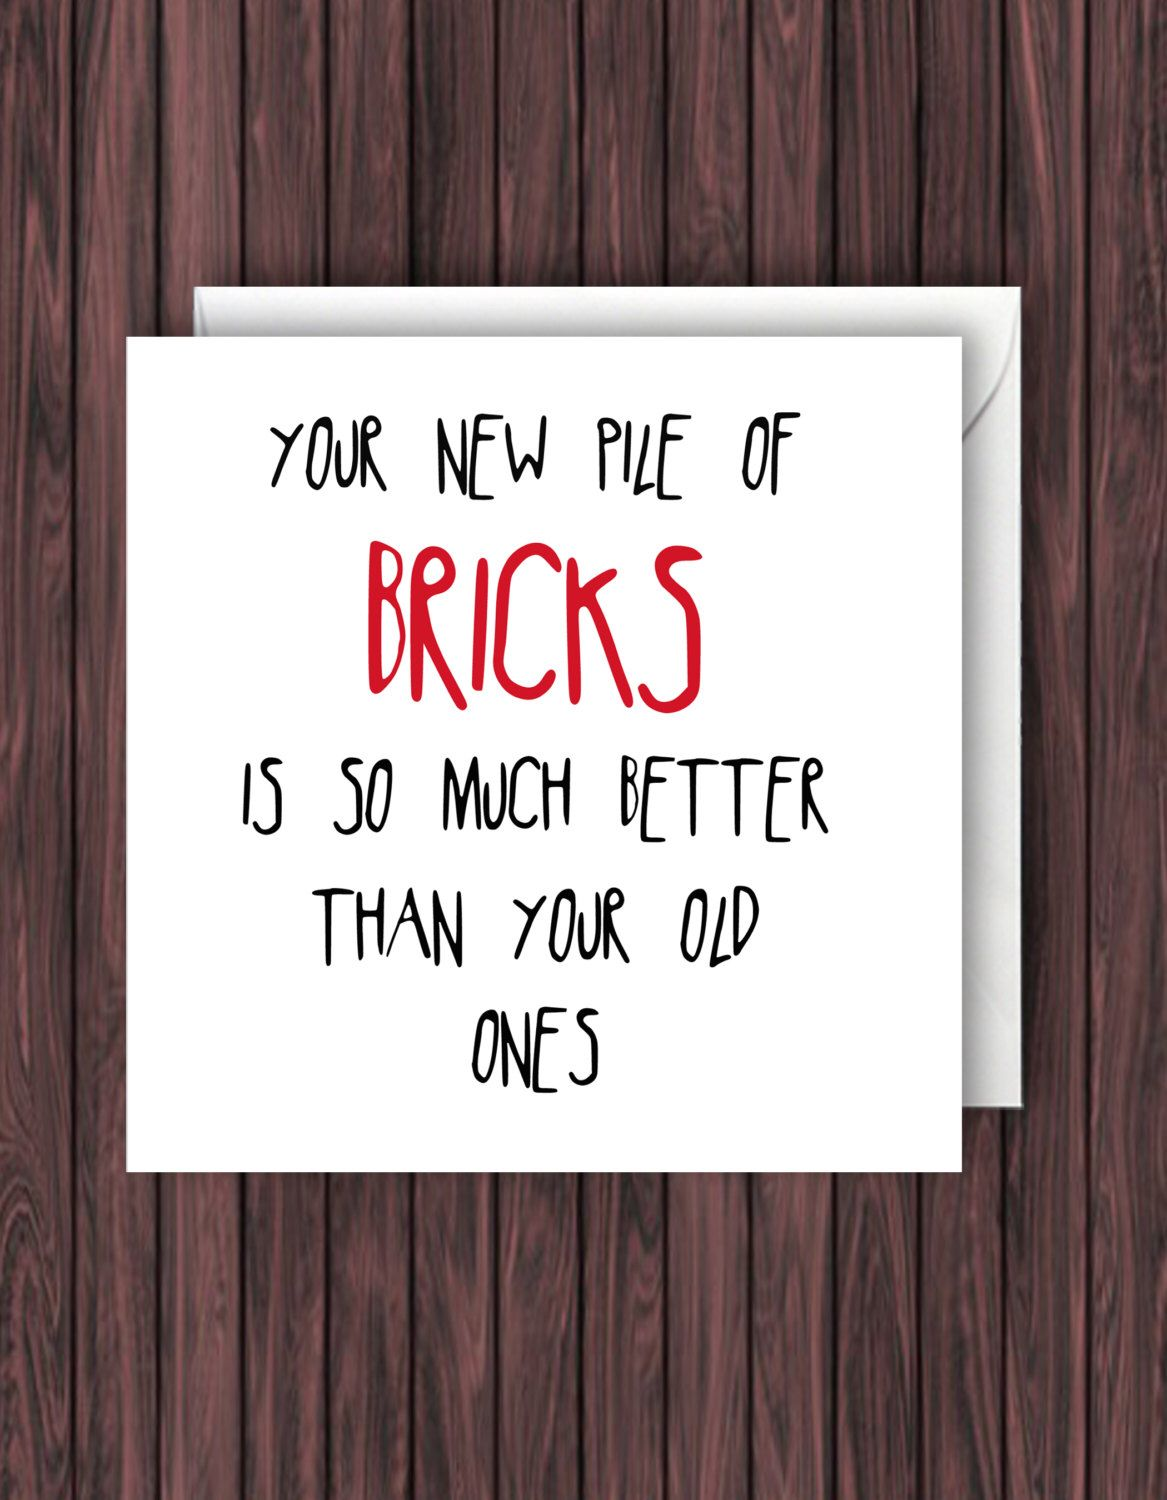 Pile of bricks funny new home card funny new house card funny funny new home card funny new house card funny greeting kristyandbryce Image collections